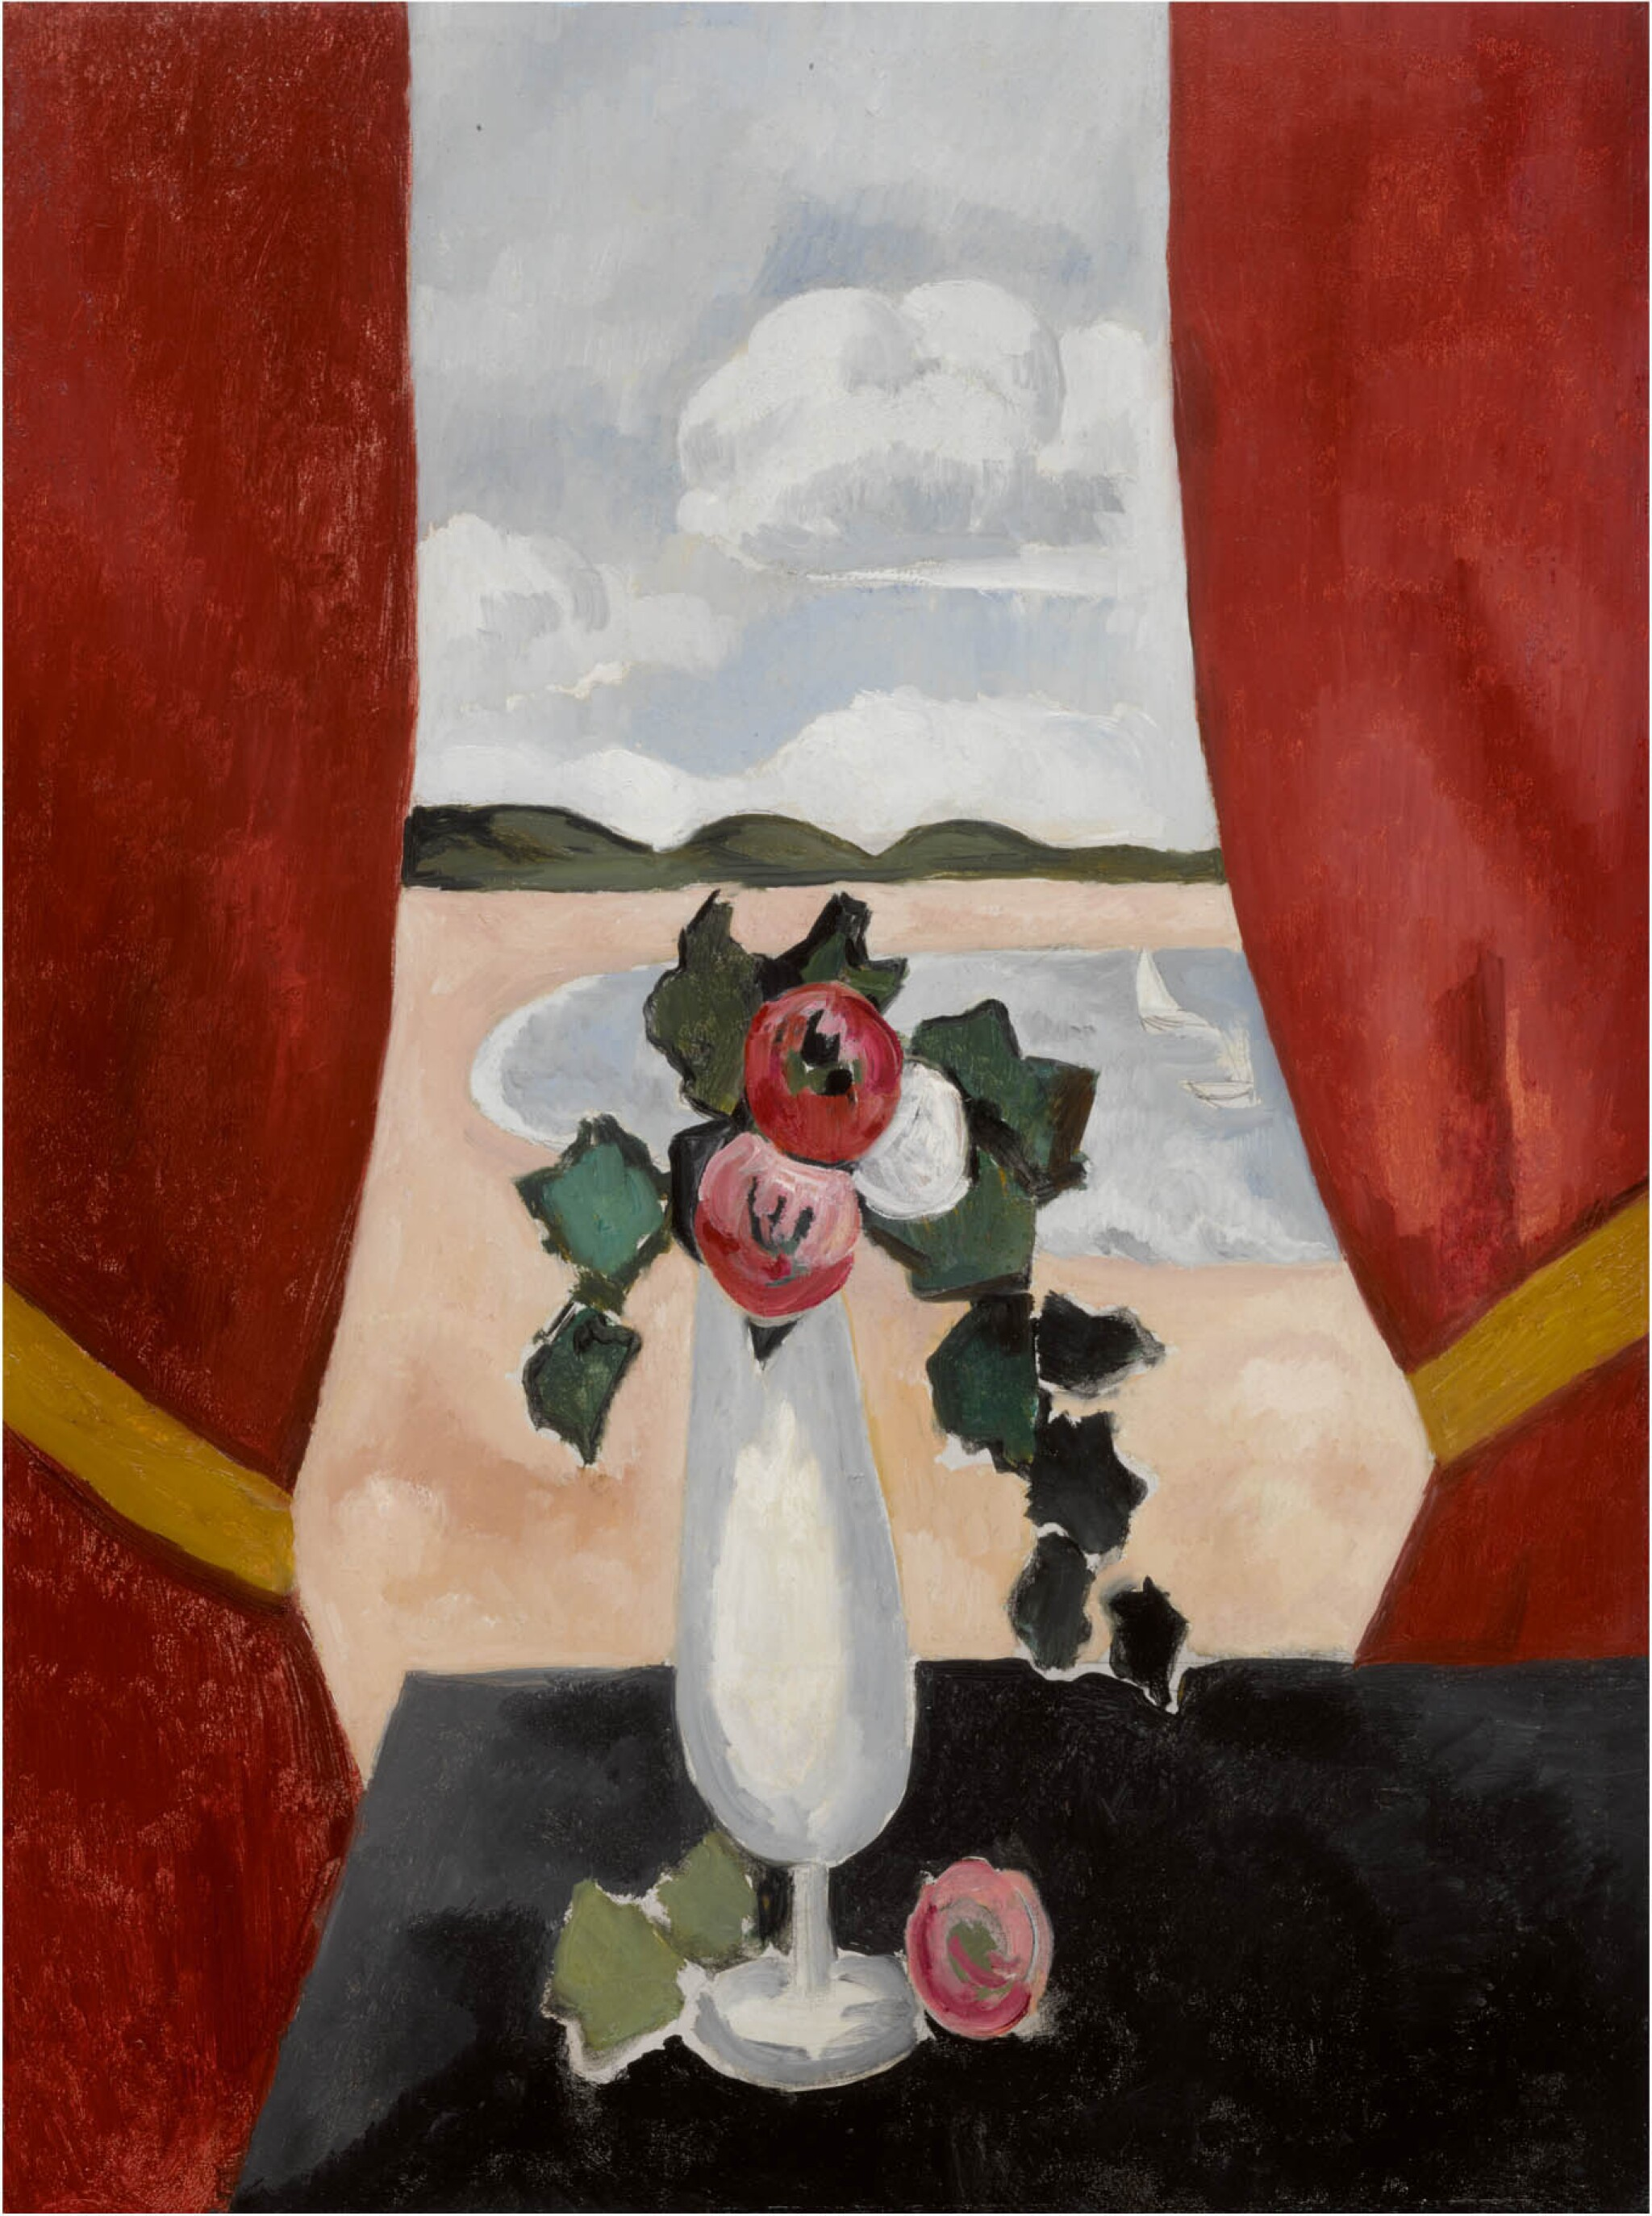 View 1 of Lot 44. Red Camellias in a Vase.